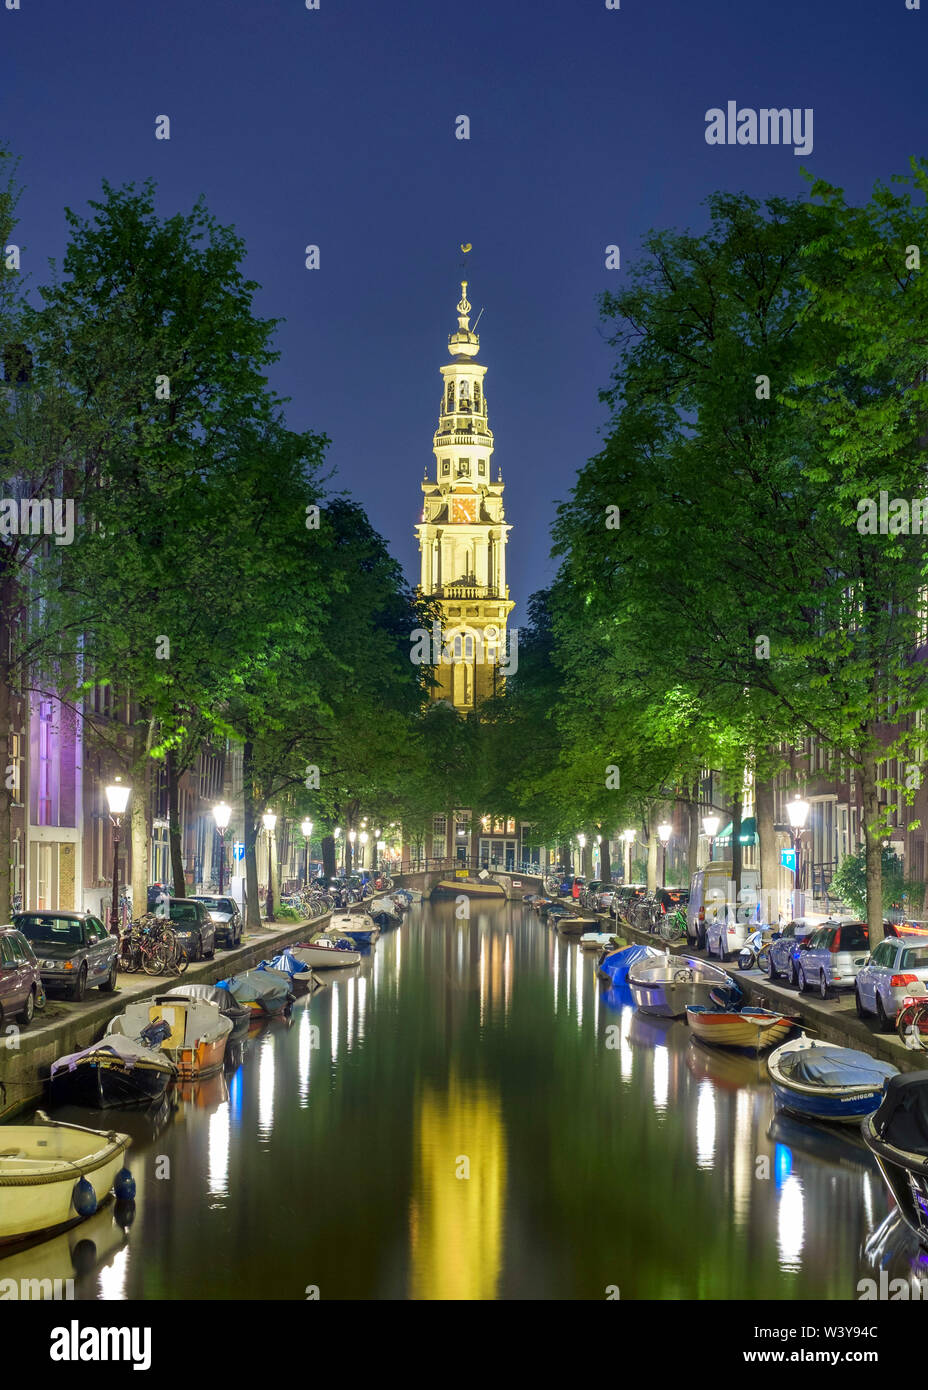 Tower of Zuiderkerk church from Groenburgwal at night, Amsterdam, North Holland, Netherlands - Stock Image